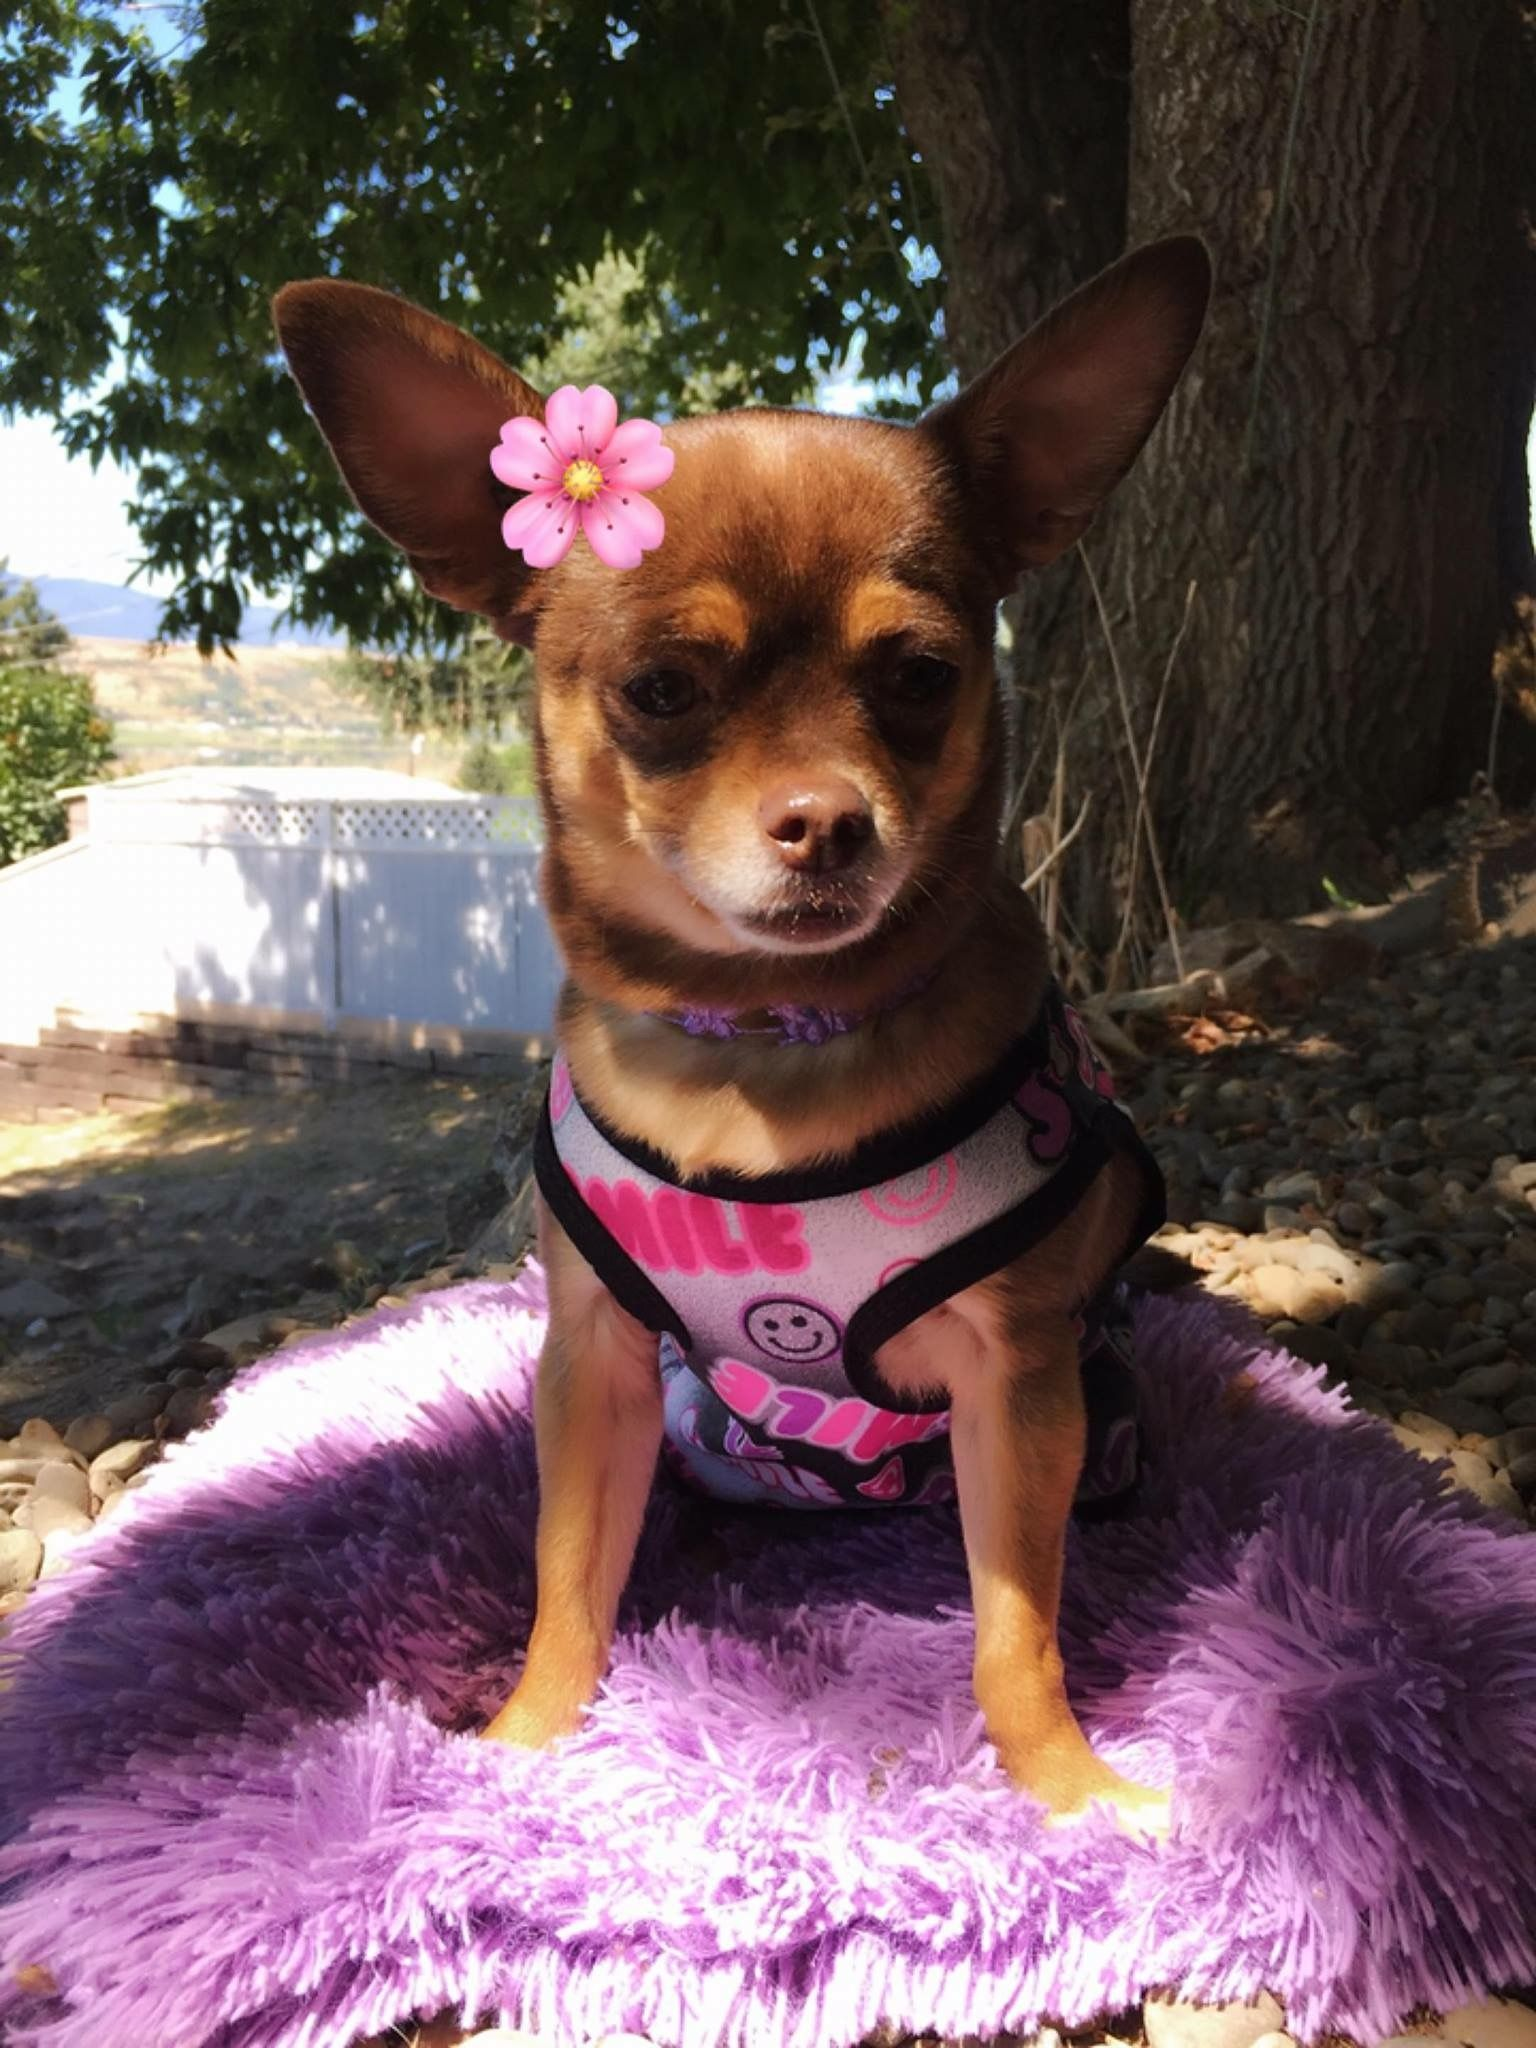 Nummy Cute Chihuahua Like Her Page On Facebook For More Cute